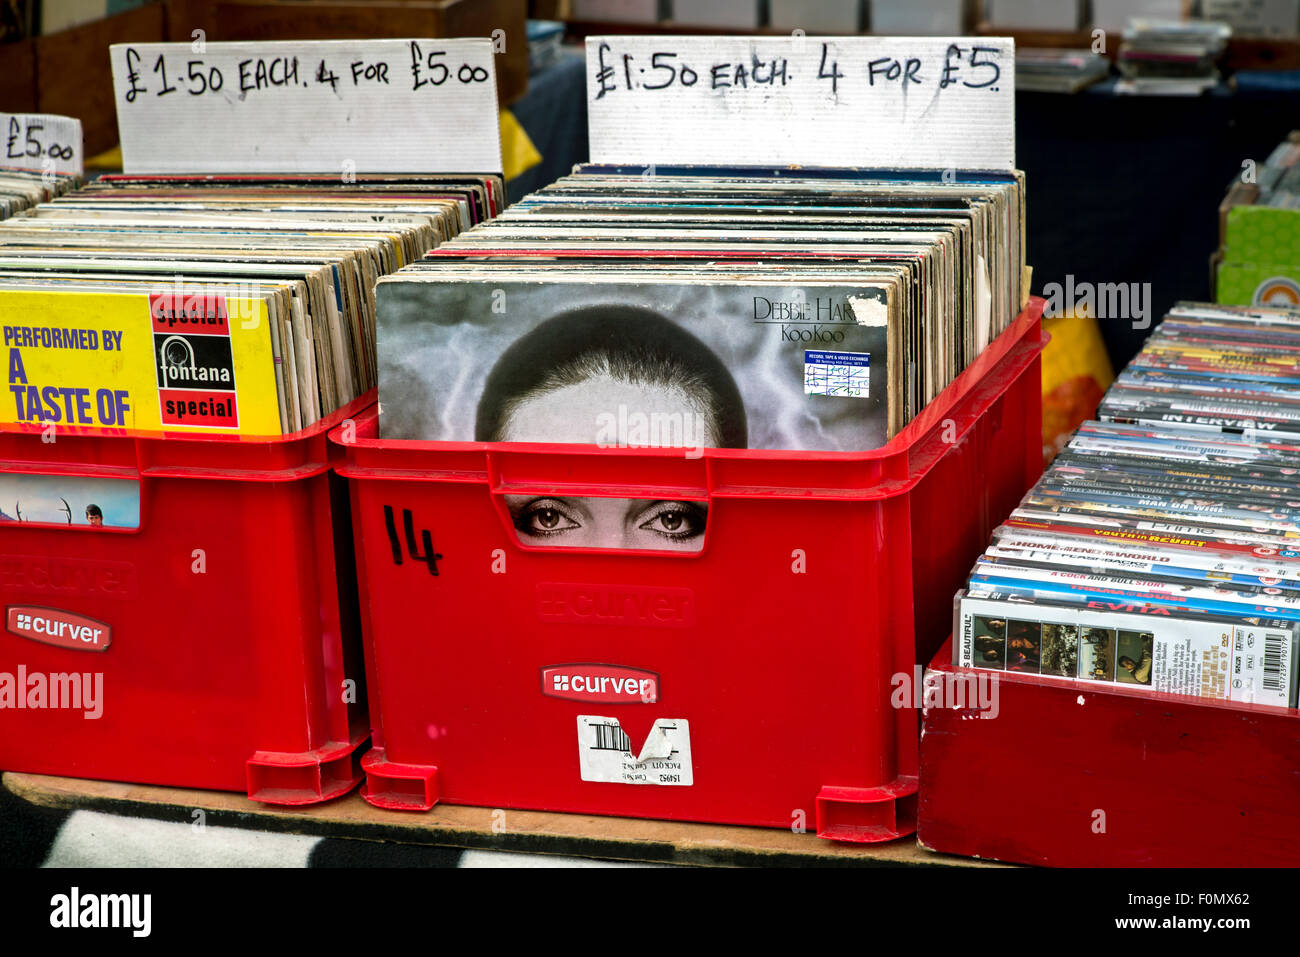 Debbie Harry album sleeve peeking out from a box of secondhand vinyl records on a market stall in the Grassmarket - Stock Image